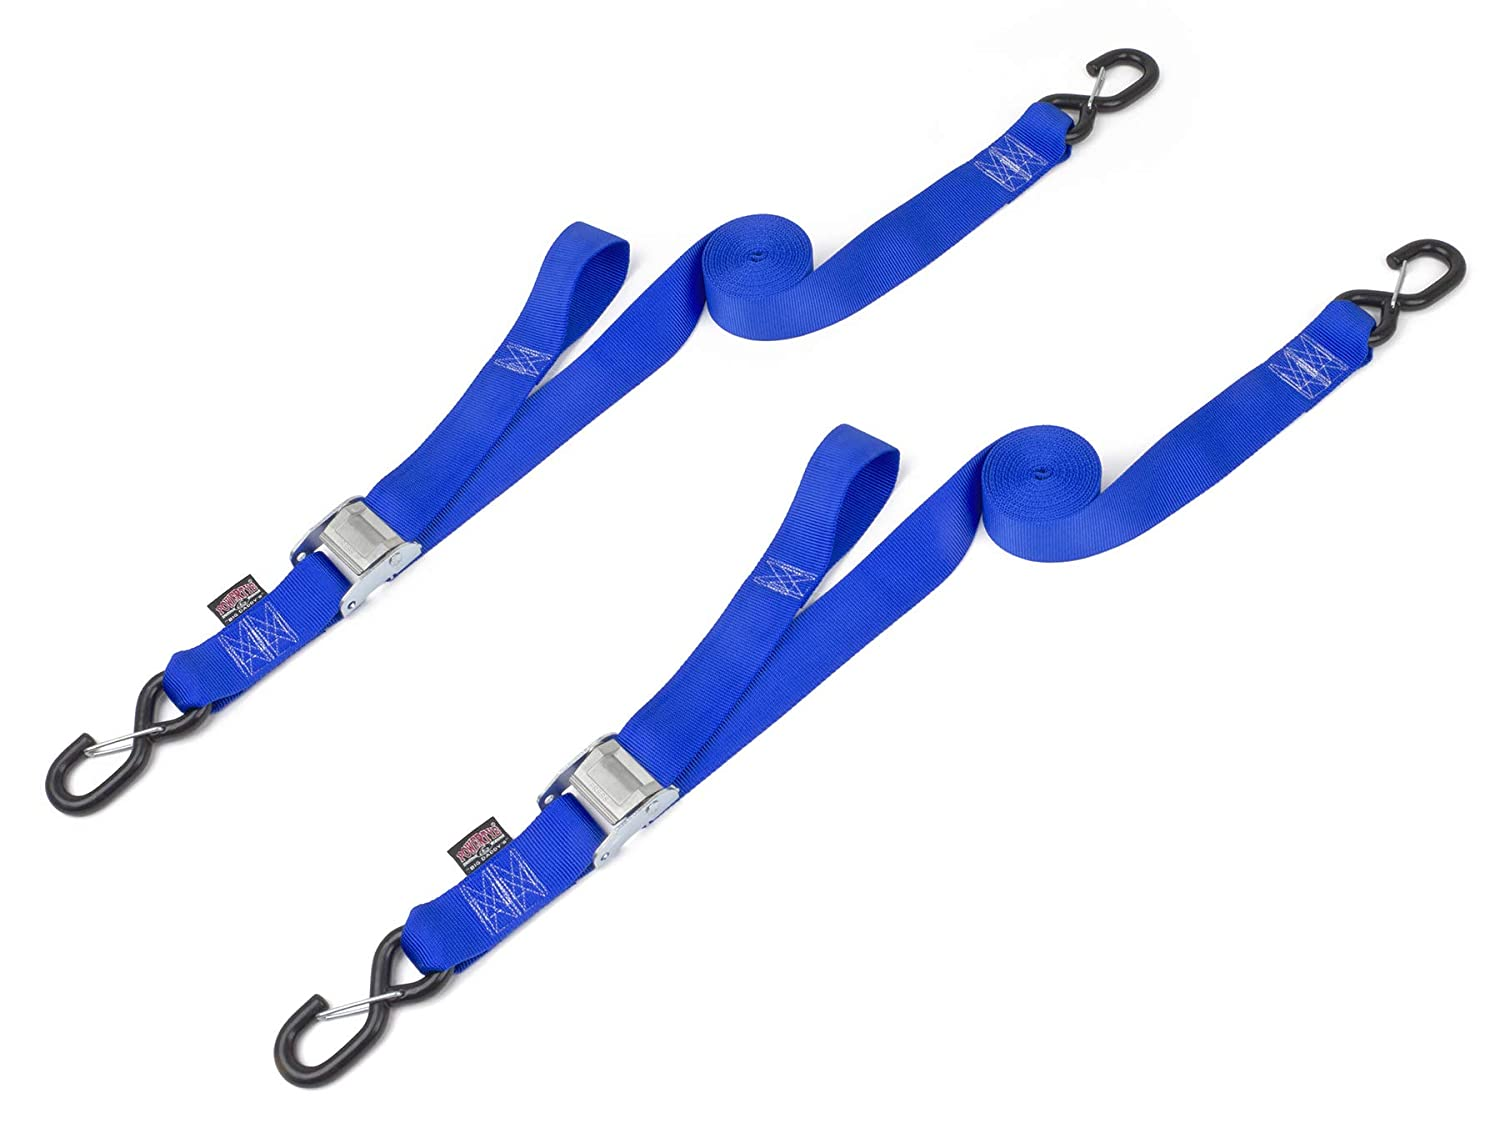 PowerTye 2 x 12ft Cam Buckle Tie-Down Made in USA with Heavy-Duty Latch Hooks Black pair